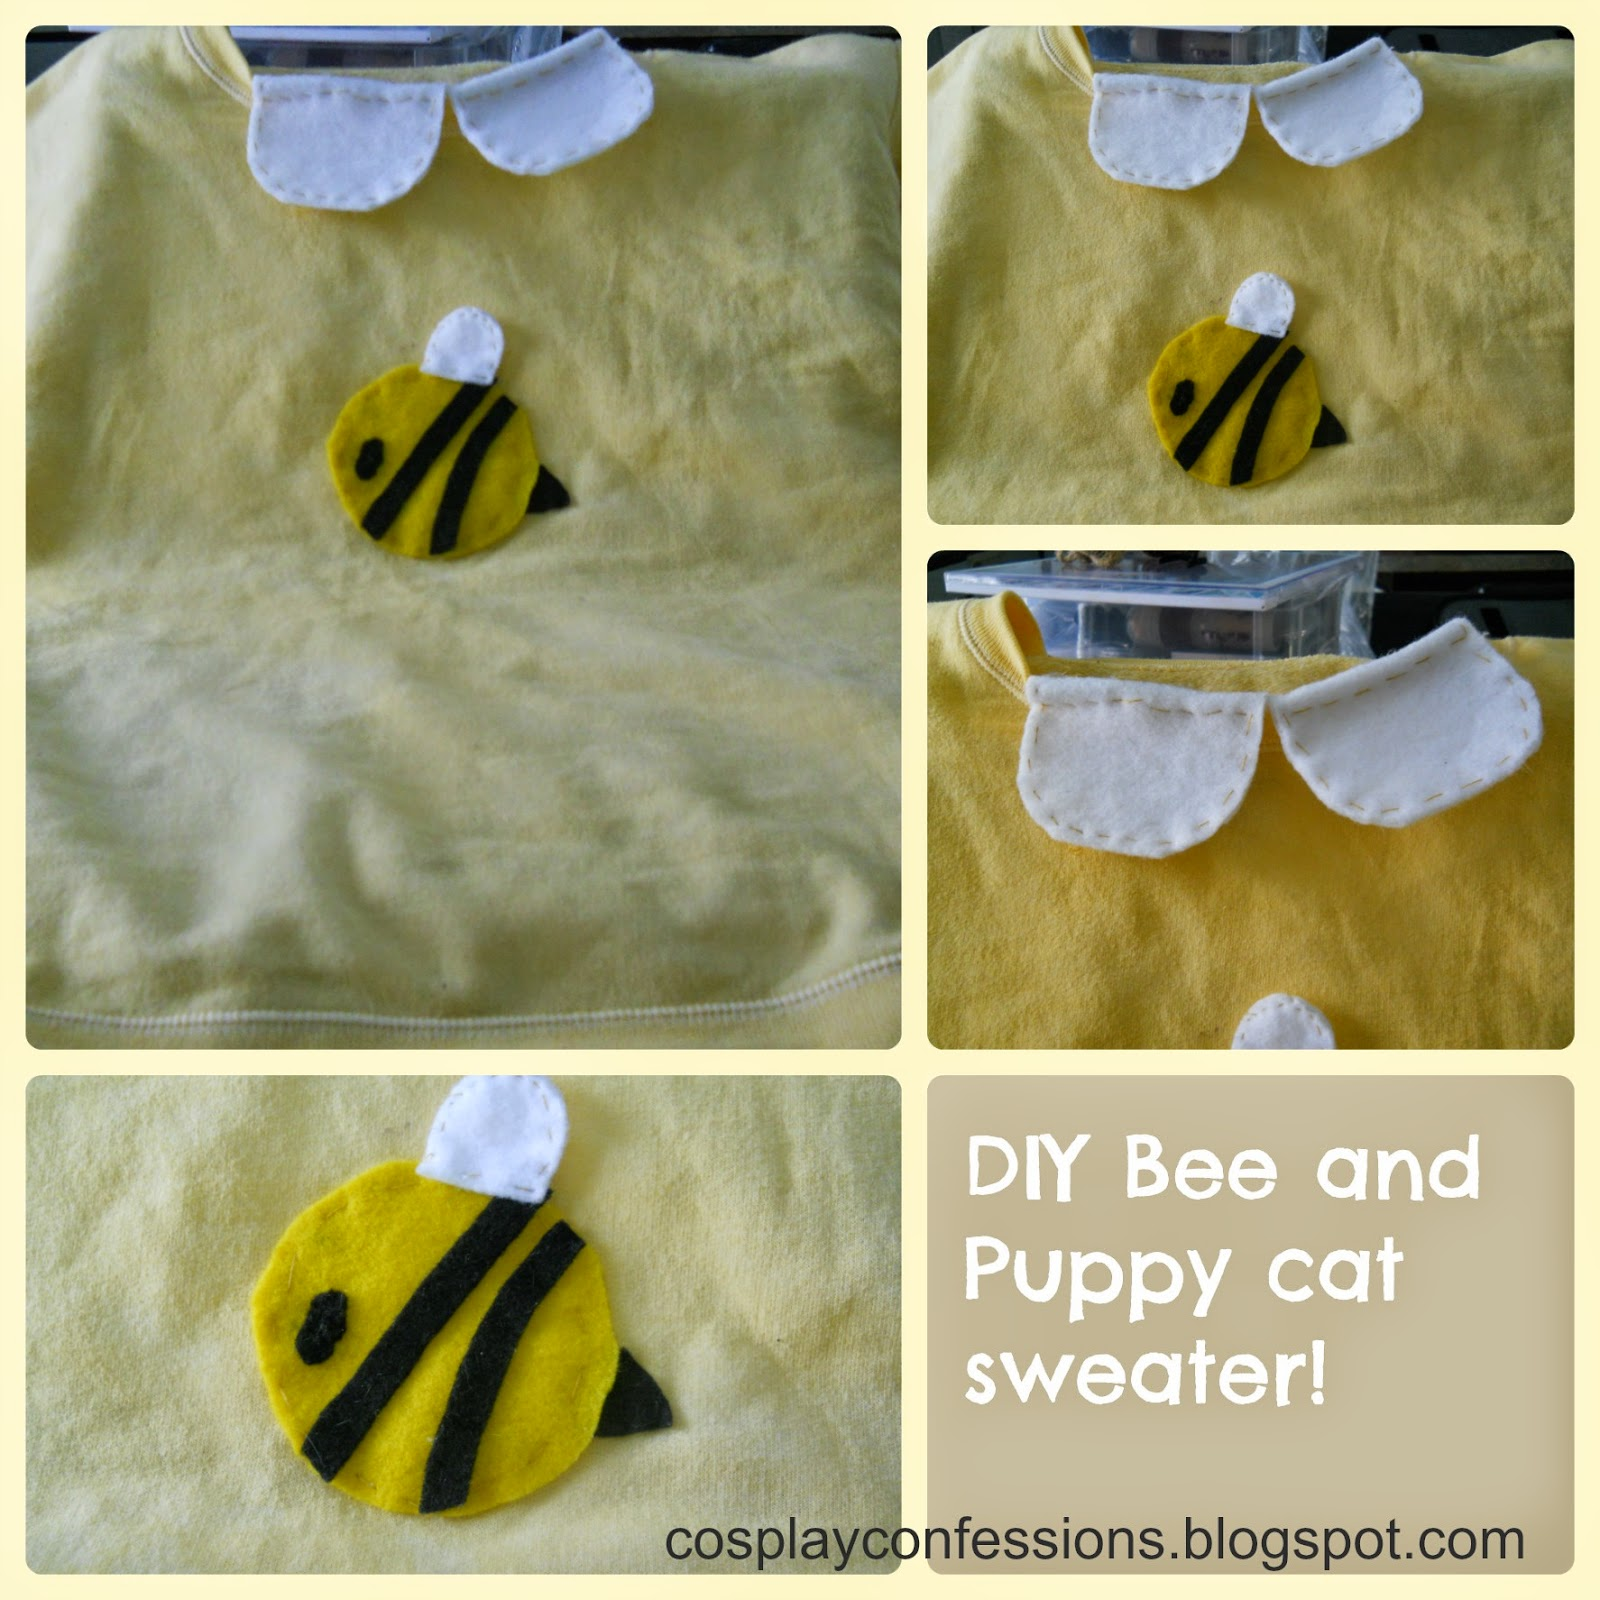 Cosplay Confessions Diy Bee And Puppycat Bees Sweater